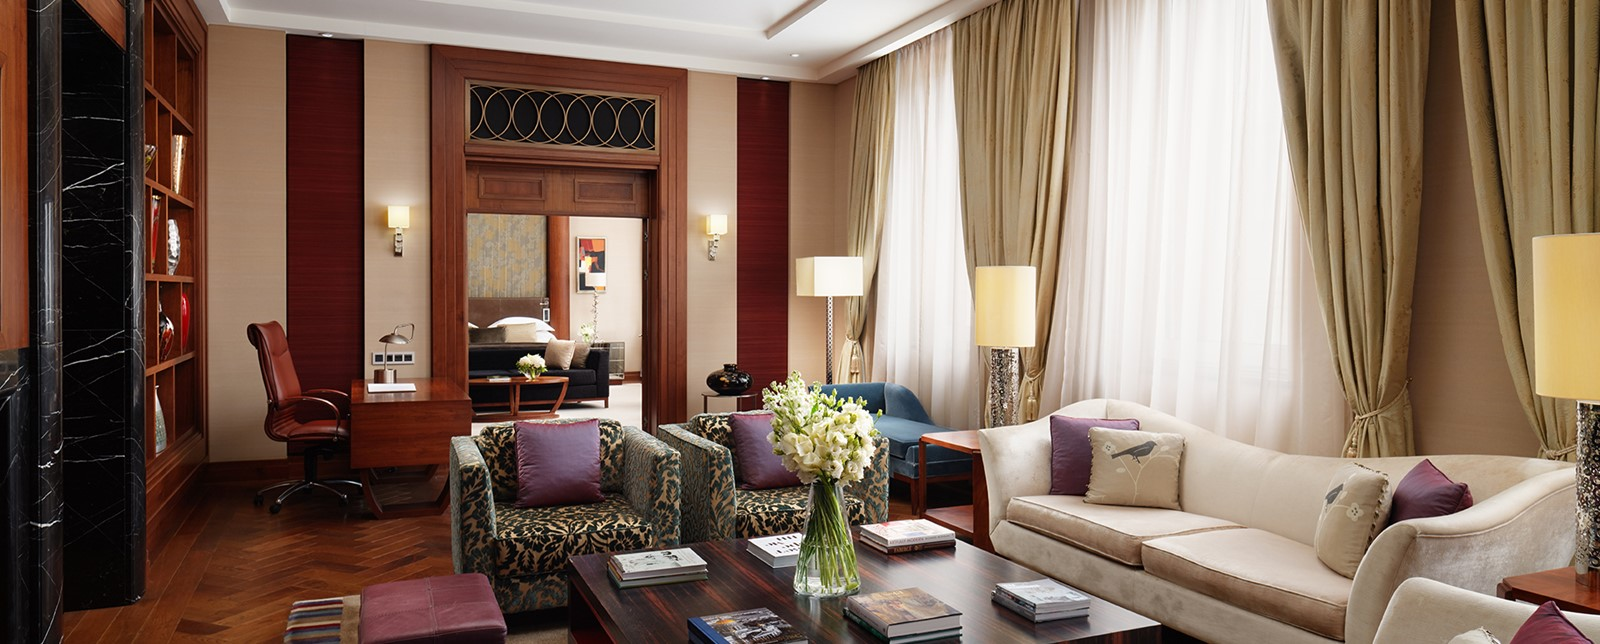 Corinthia St Petersburg Royal Suite living room